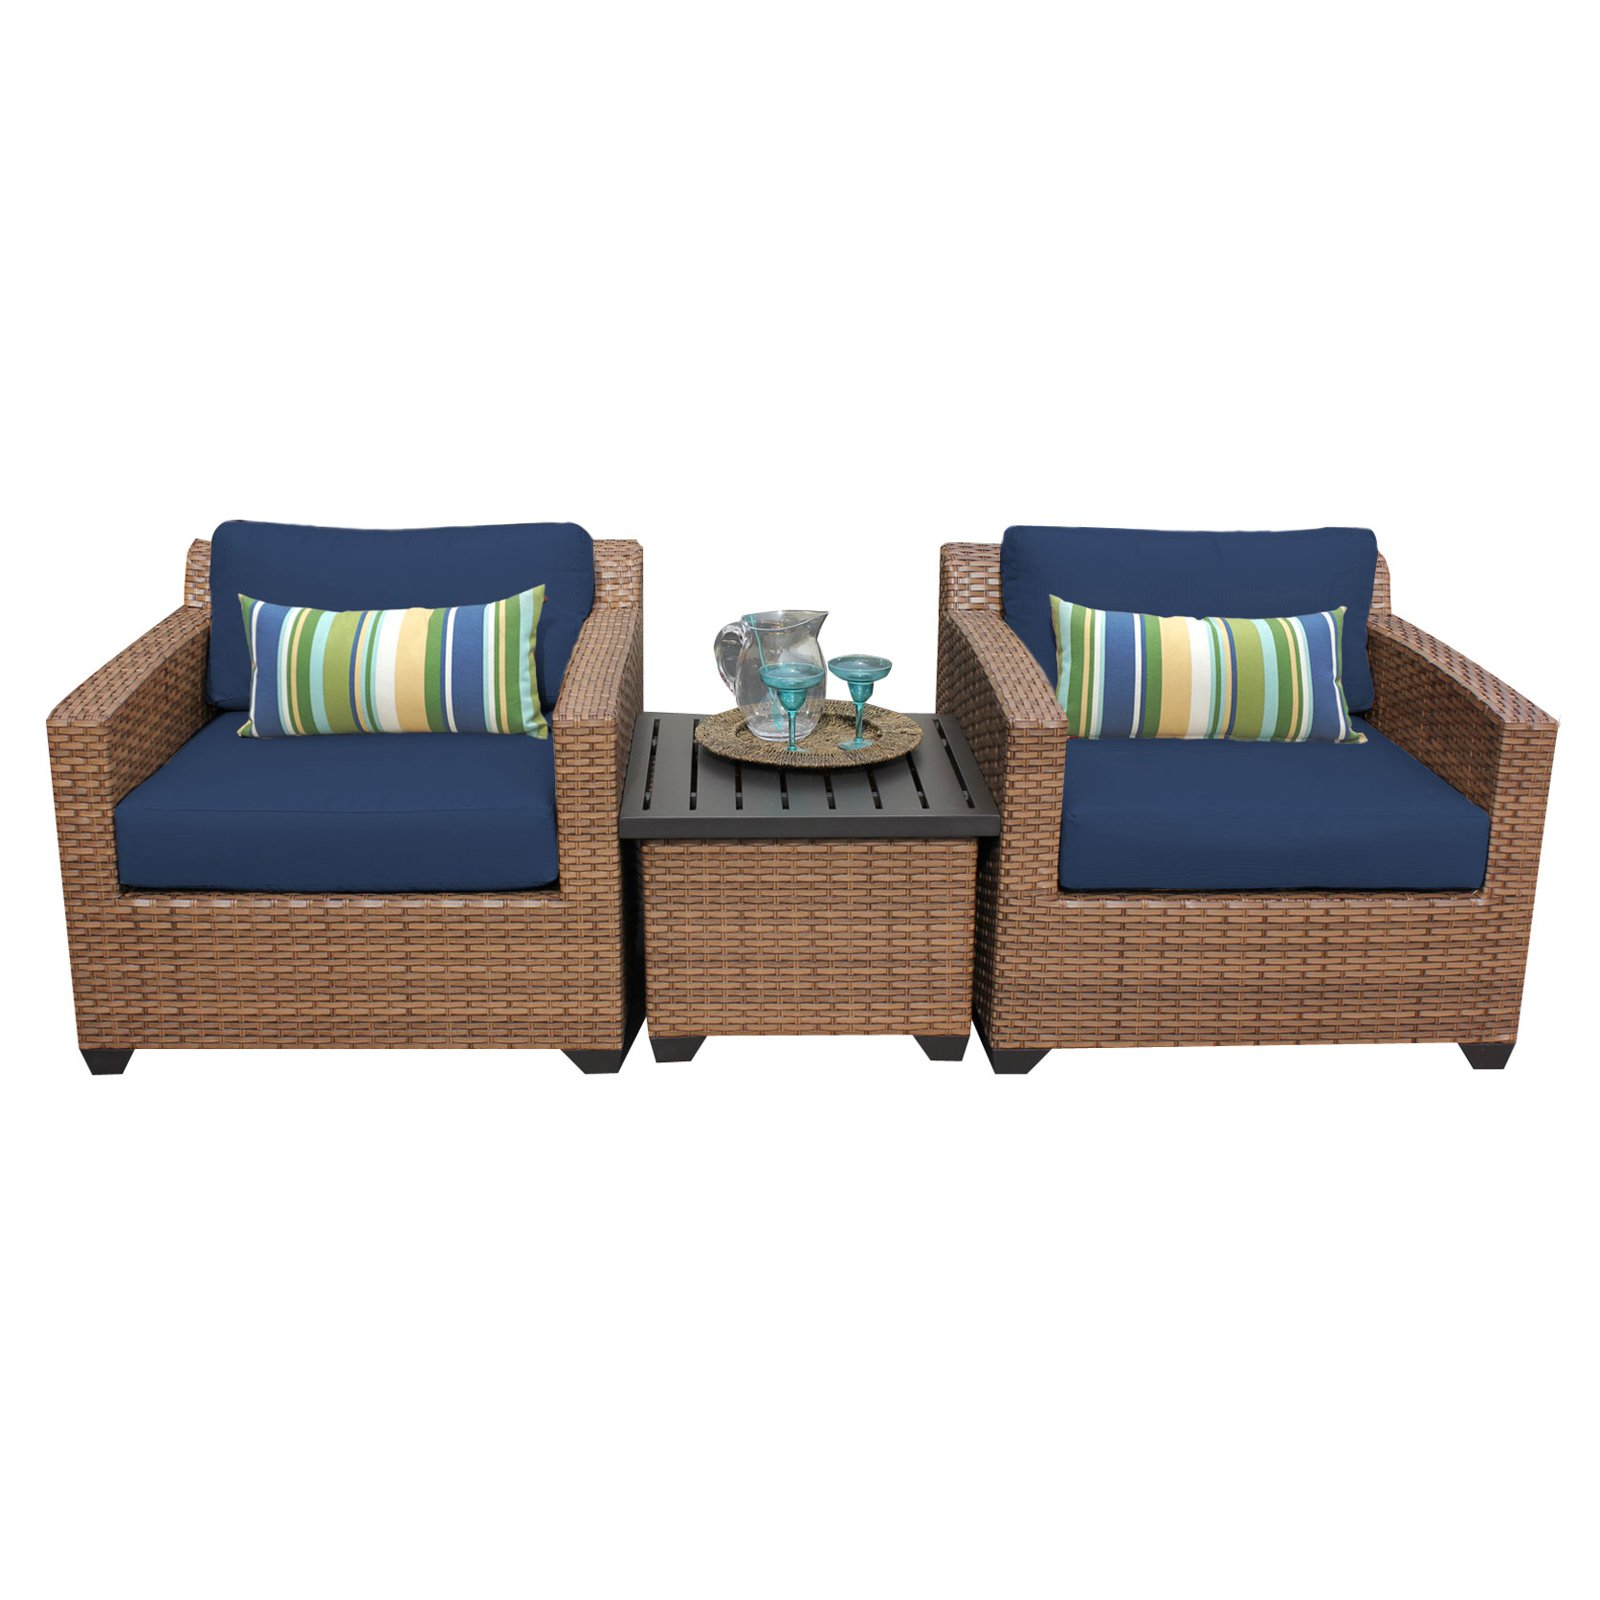 tk classics laguna wicker 3 patio conversation set on 3 Piece Patio Cushion Set id=92627